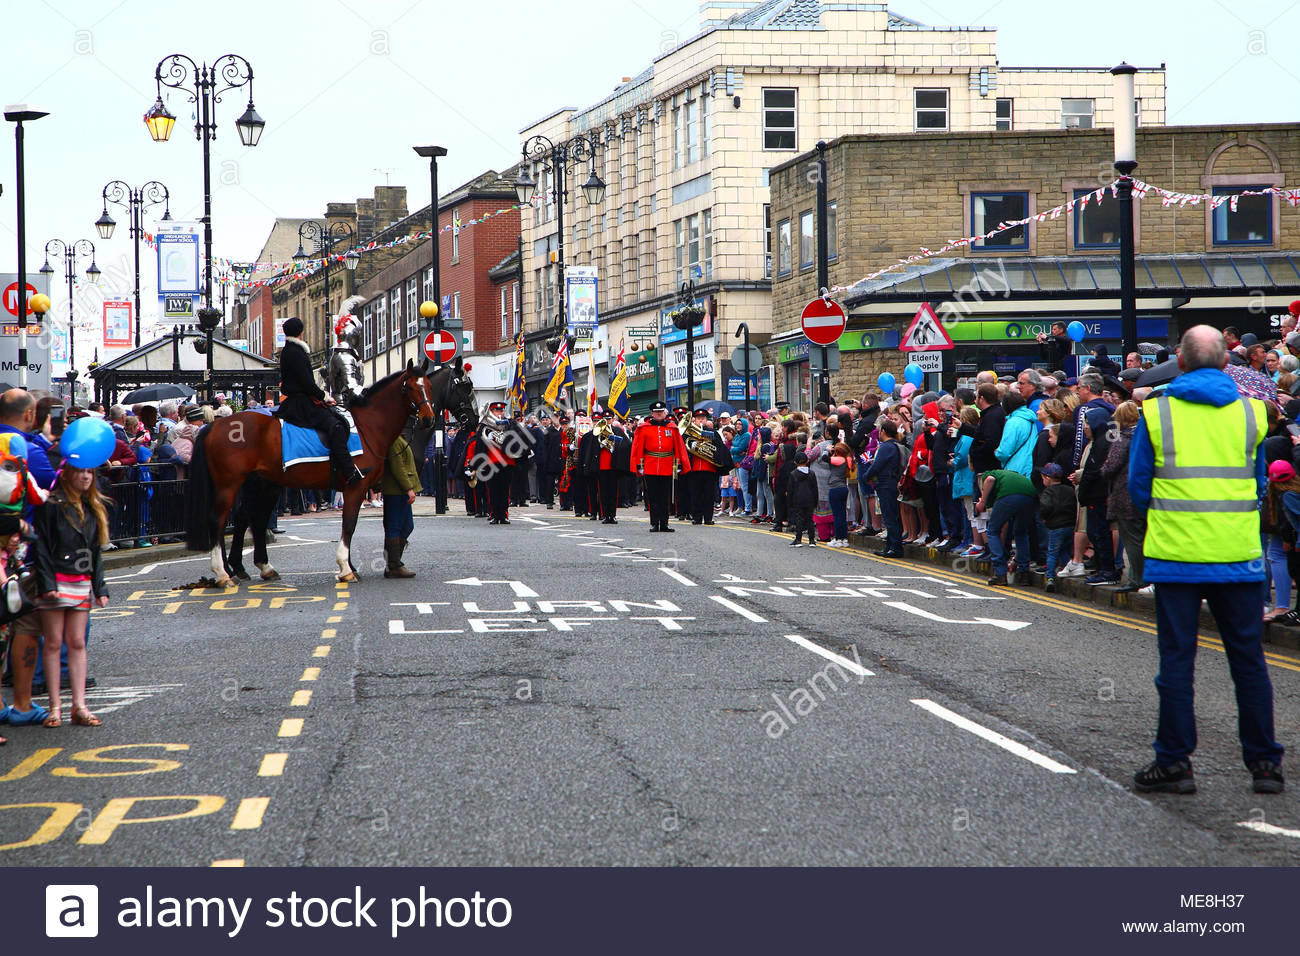 Leeds, UK, 22 April 2018  The second day of St George's day